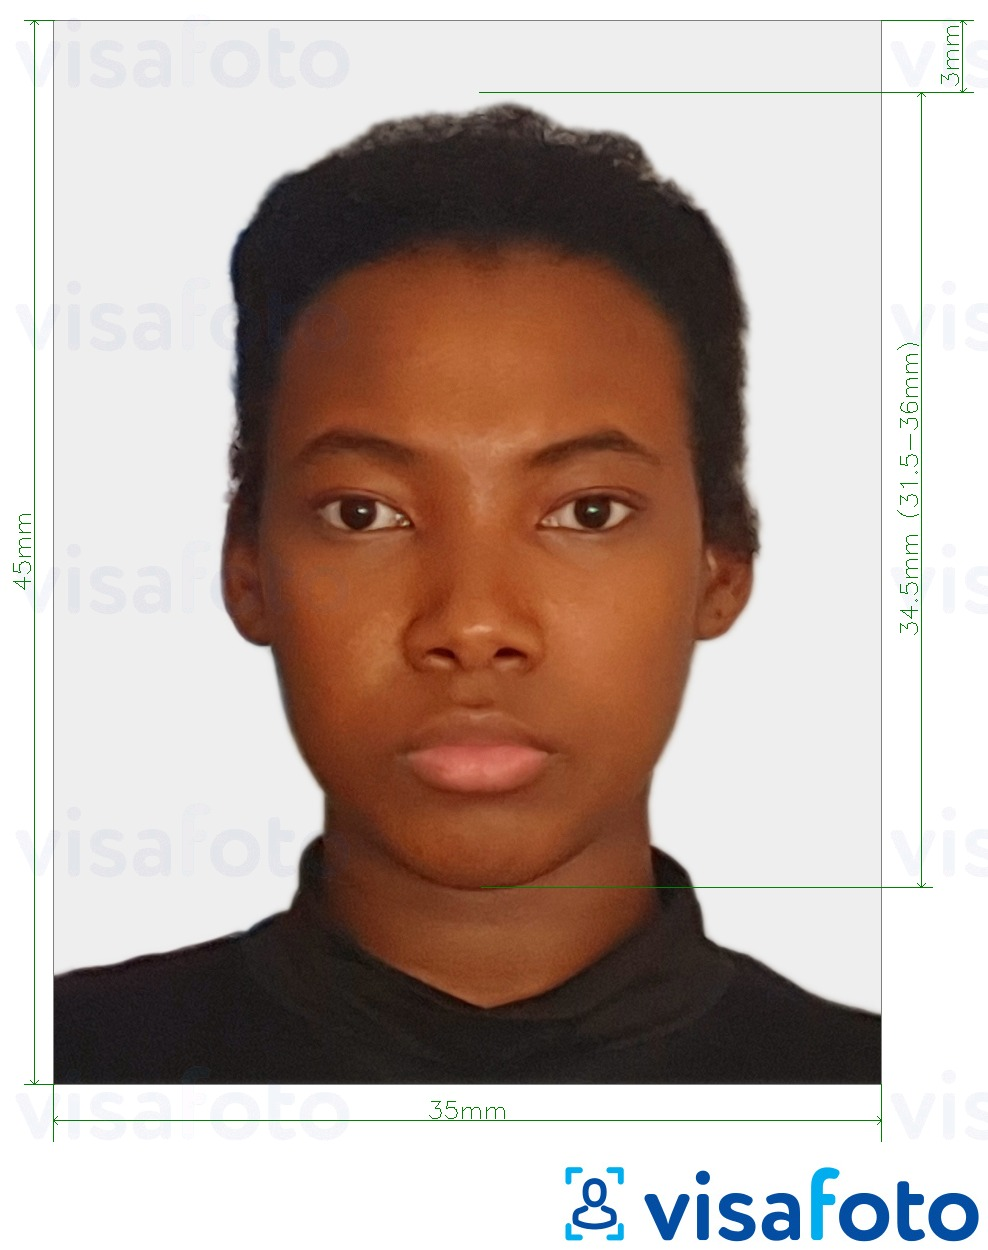 Example of photo for Togo passport 4.5x3.5 cm (45x35mm) with exact size specification